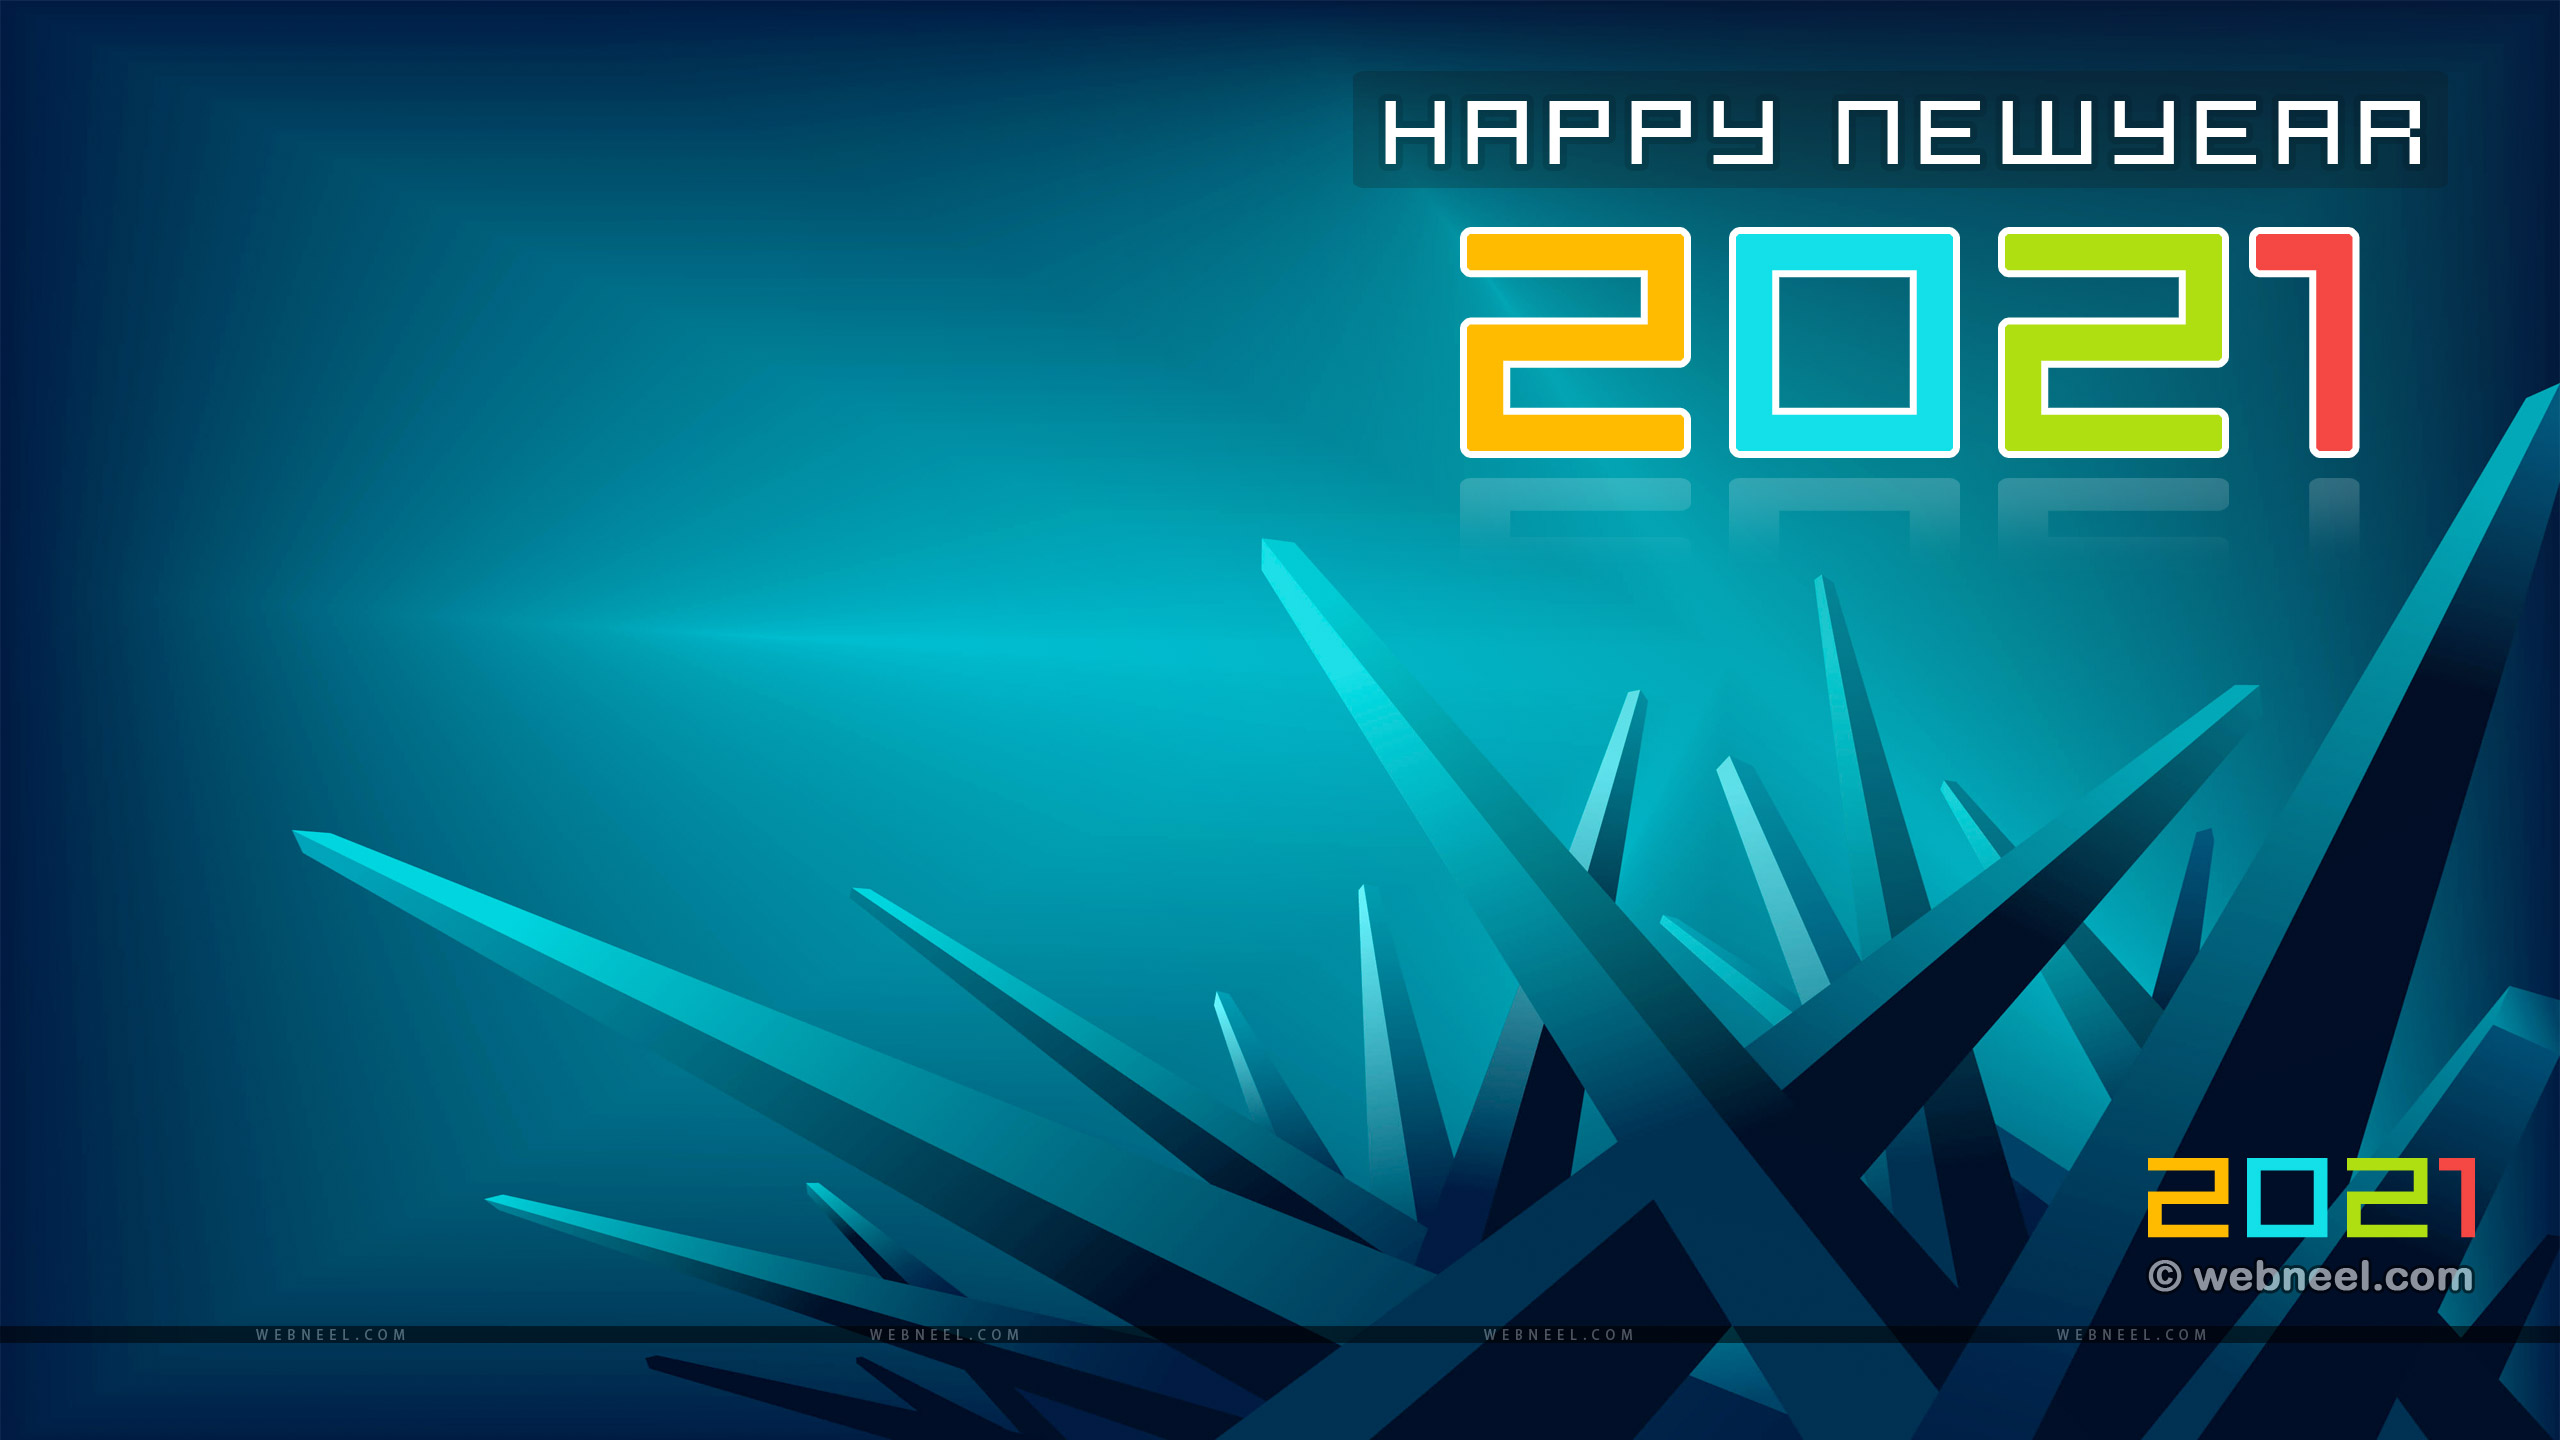 2018 new year wallpaper new year wallpaper abstract